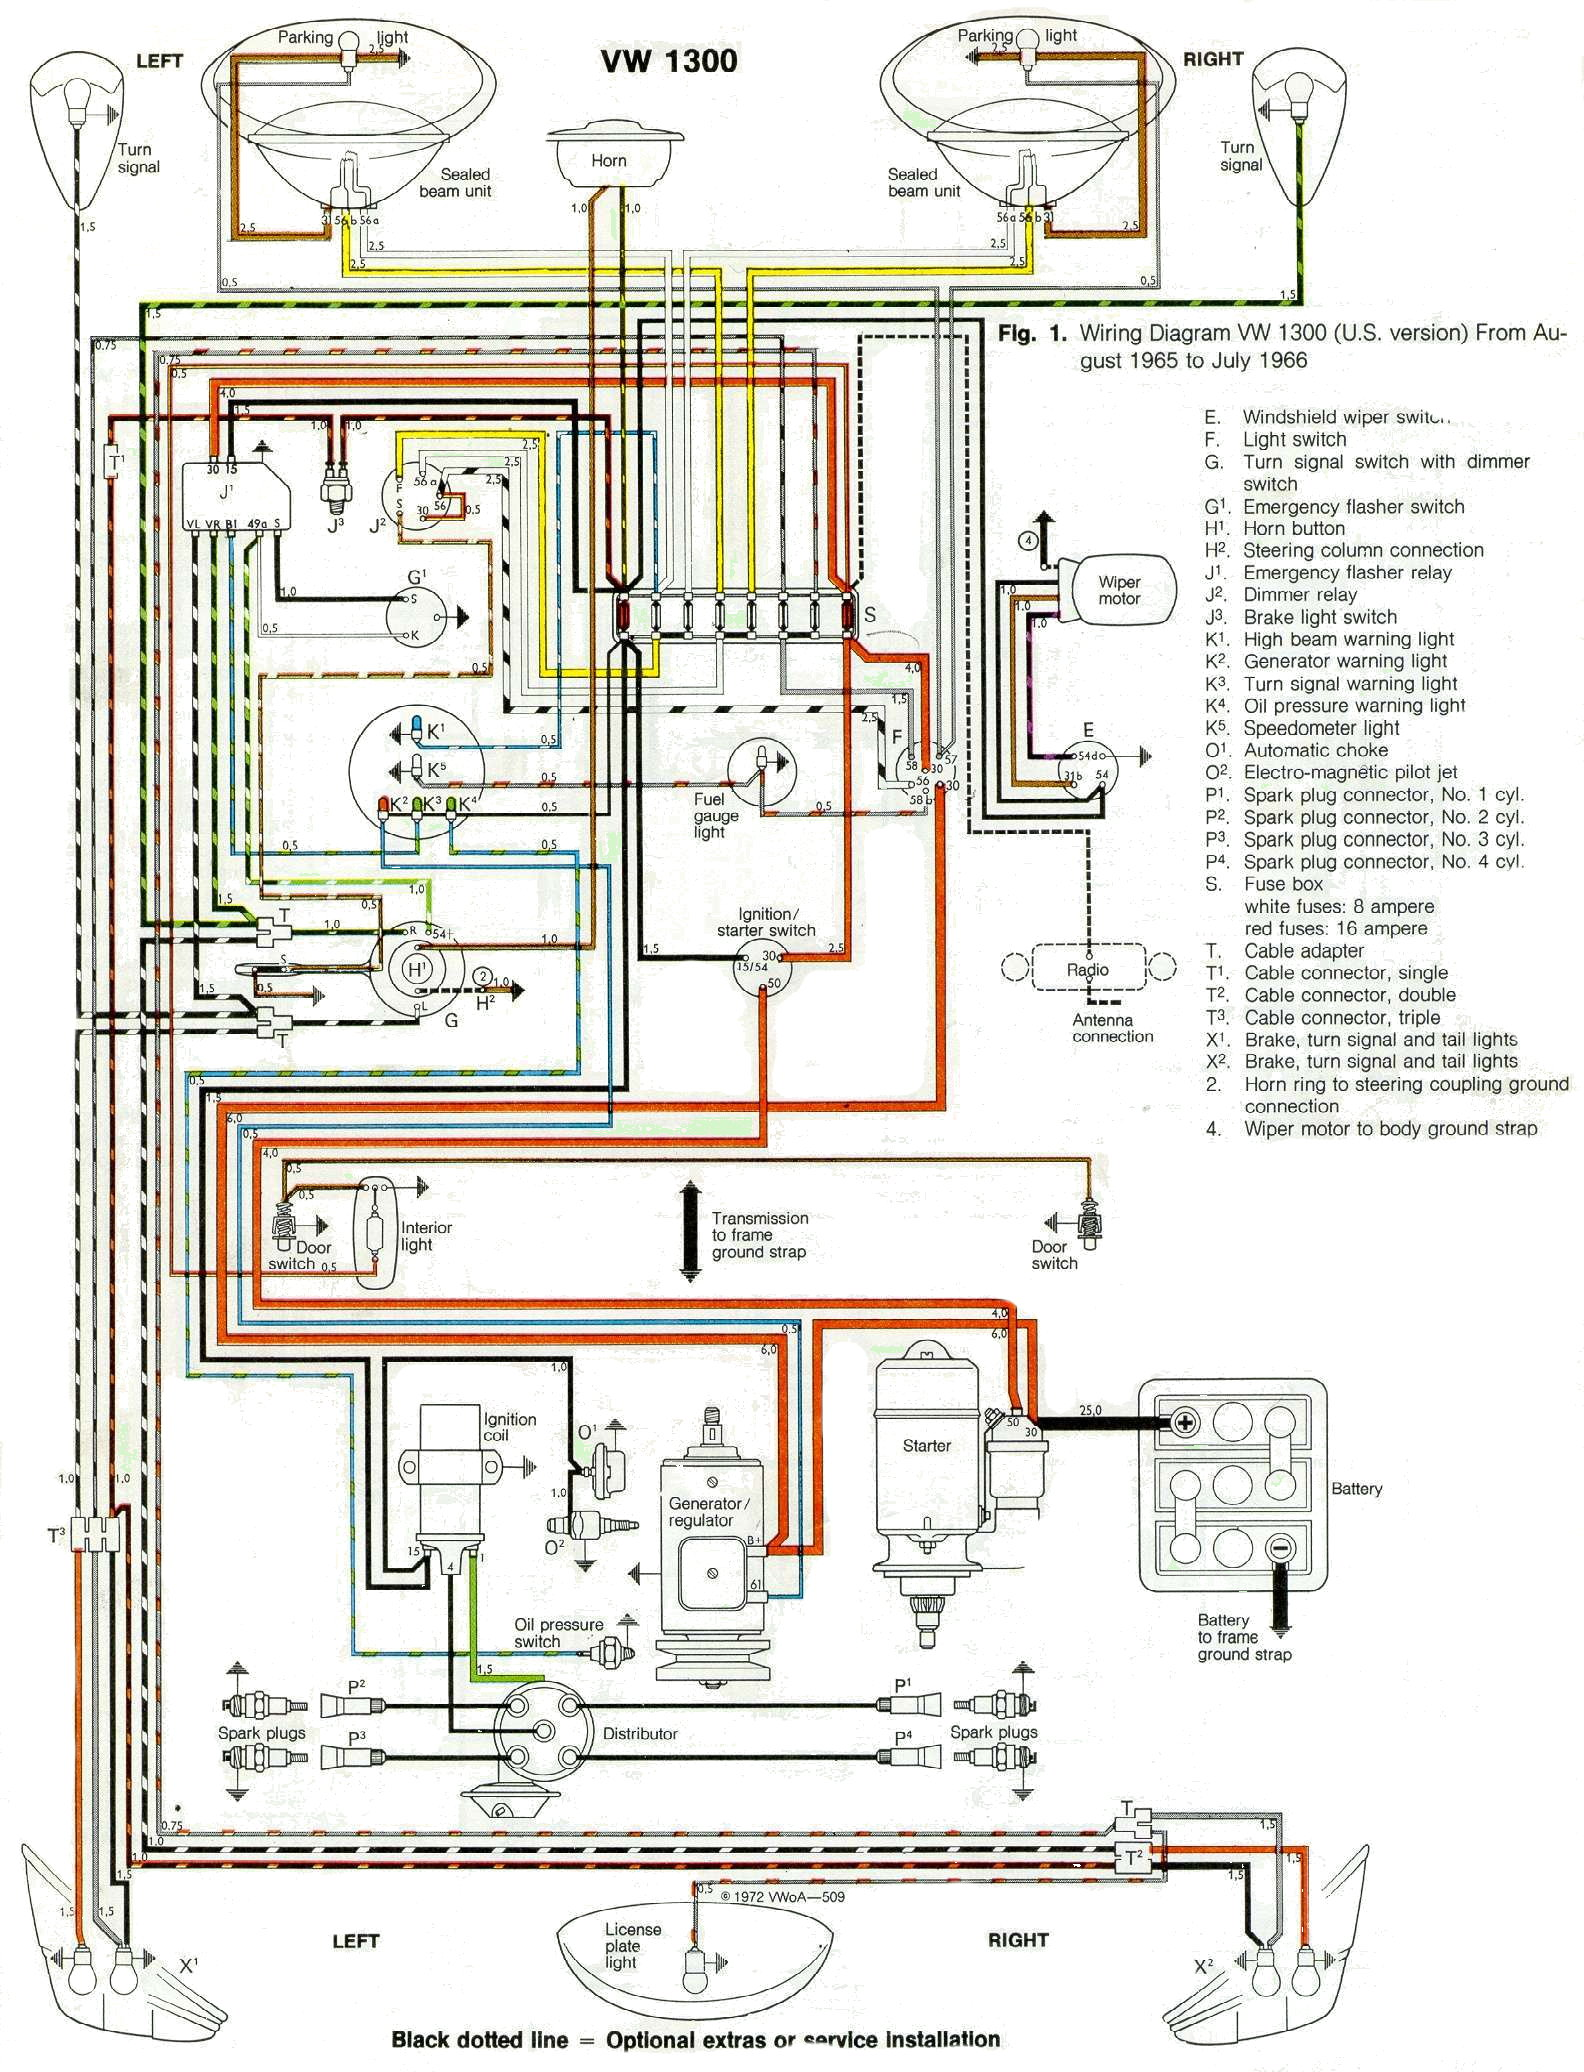 1966 Wiring 67 vw bus wiring harness 71 vw wiring harness \u2022 wiring diagrams Wiring Harness Diagram at fashall.co